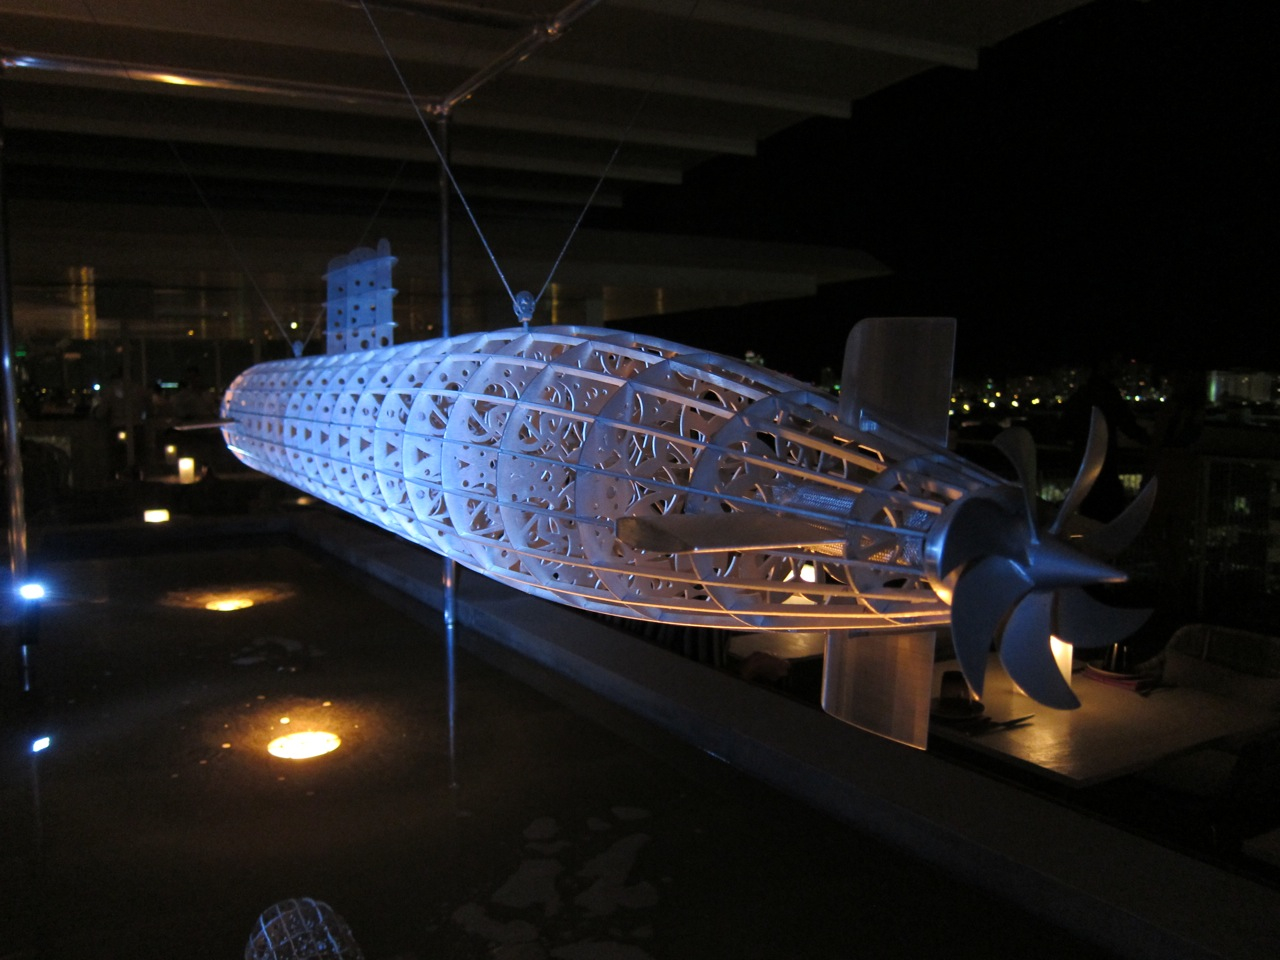 The Smoking Room Submarine, 2012 200 x 23 cm / 80 x 9 inches Aluminum Sculpture (Elevated above a pool)